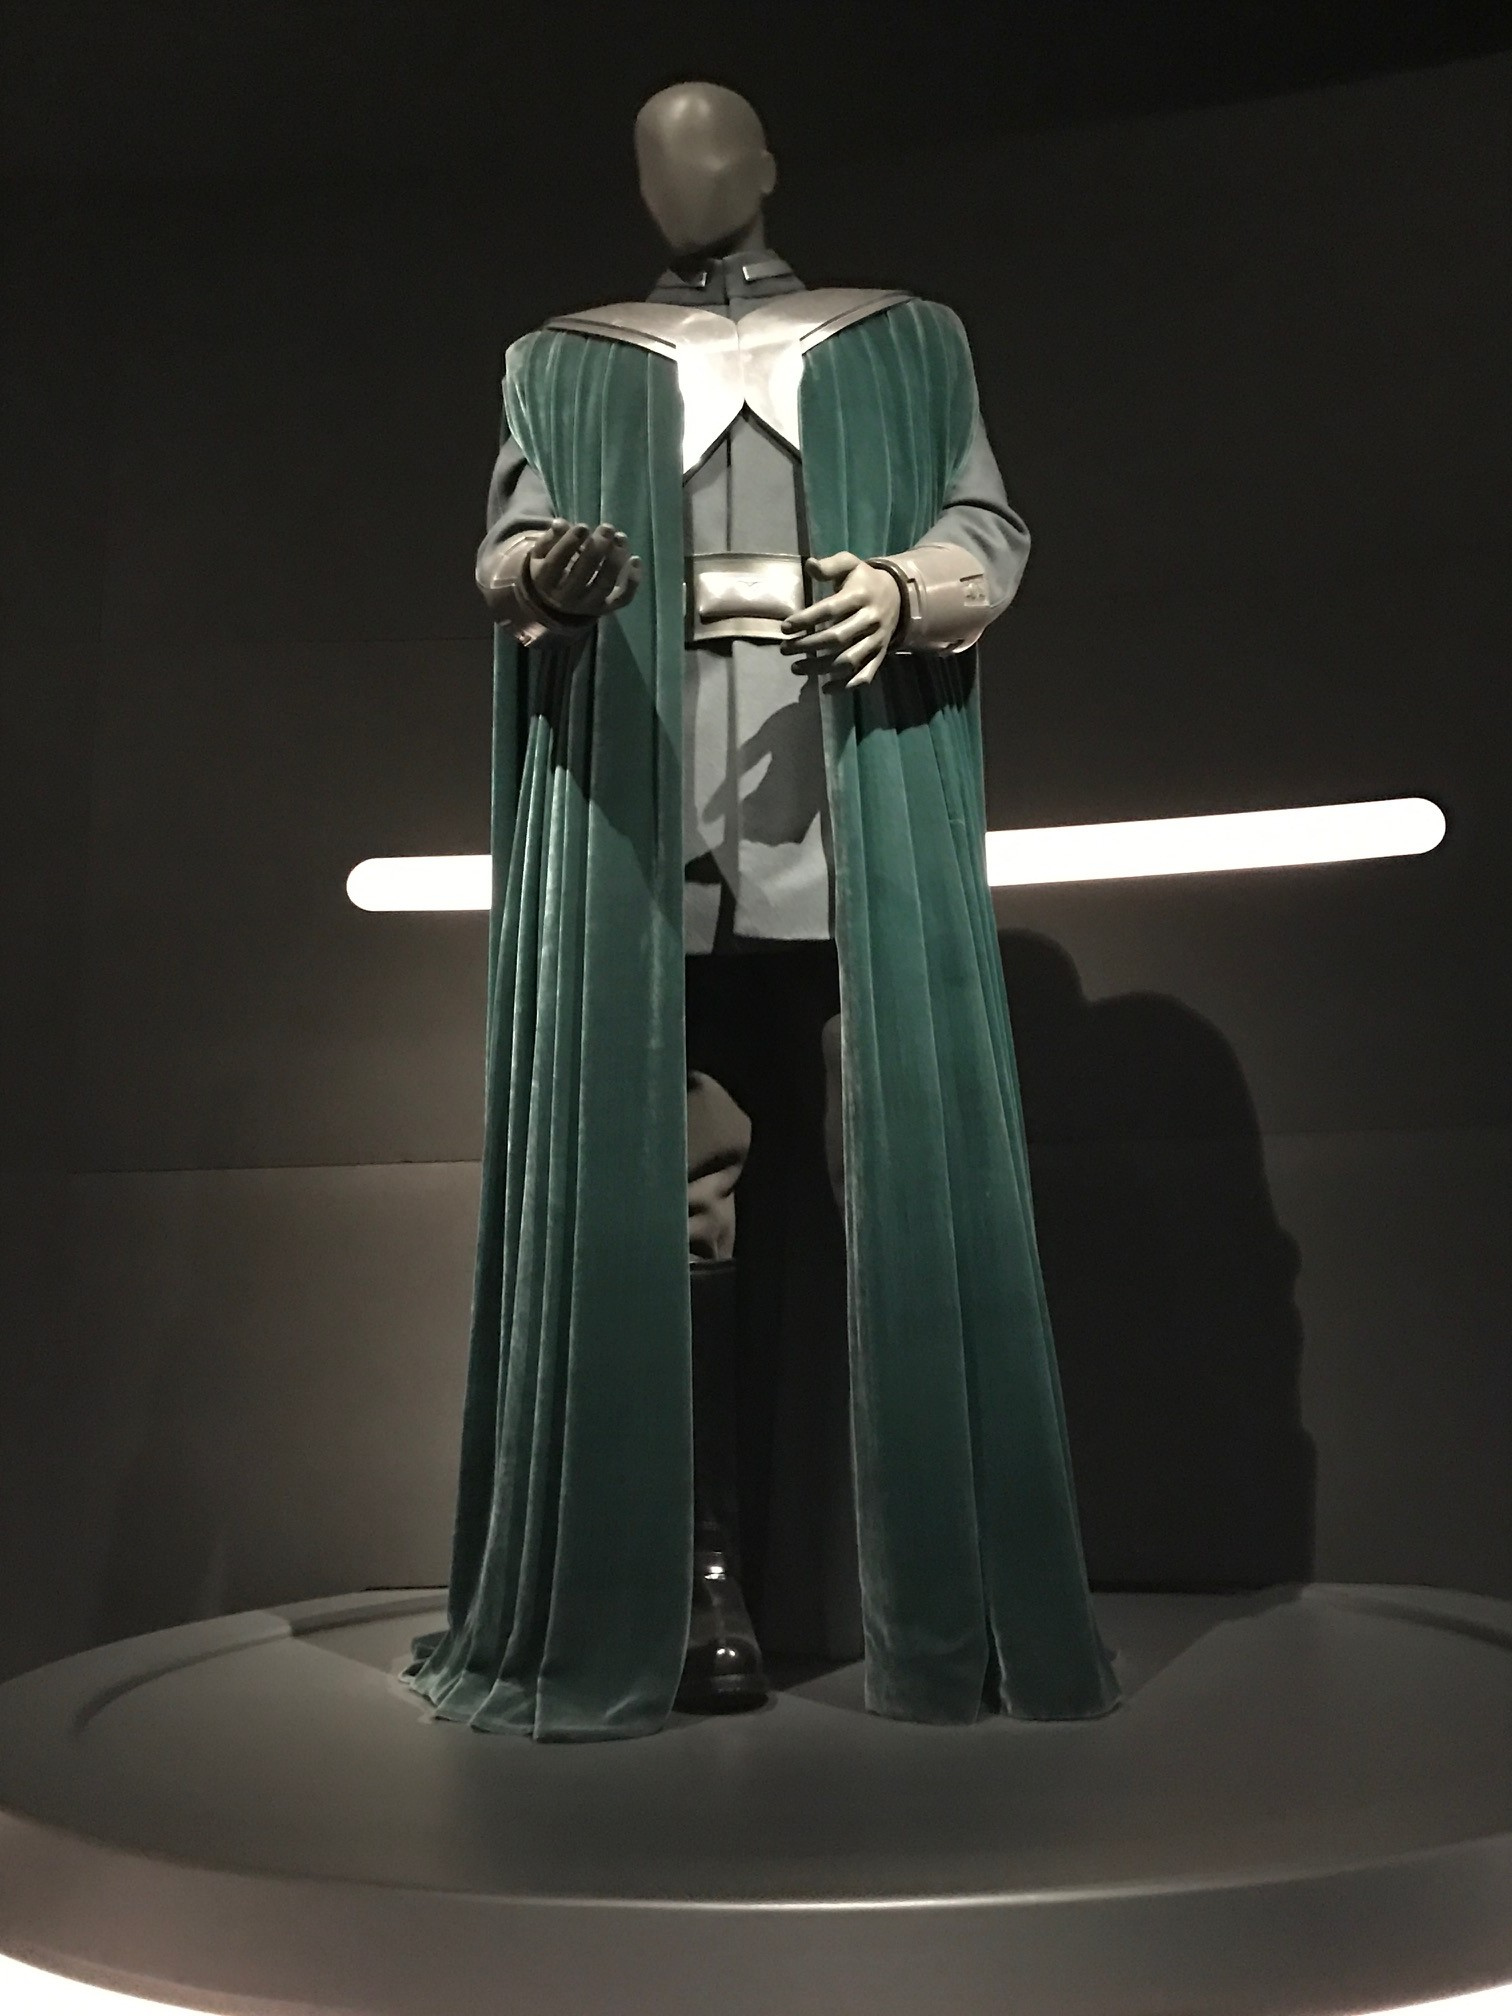 Full Senator Bail Organa costume